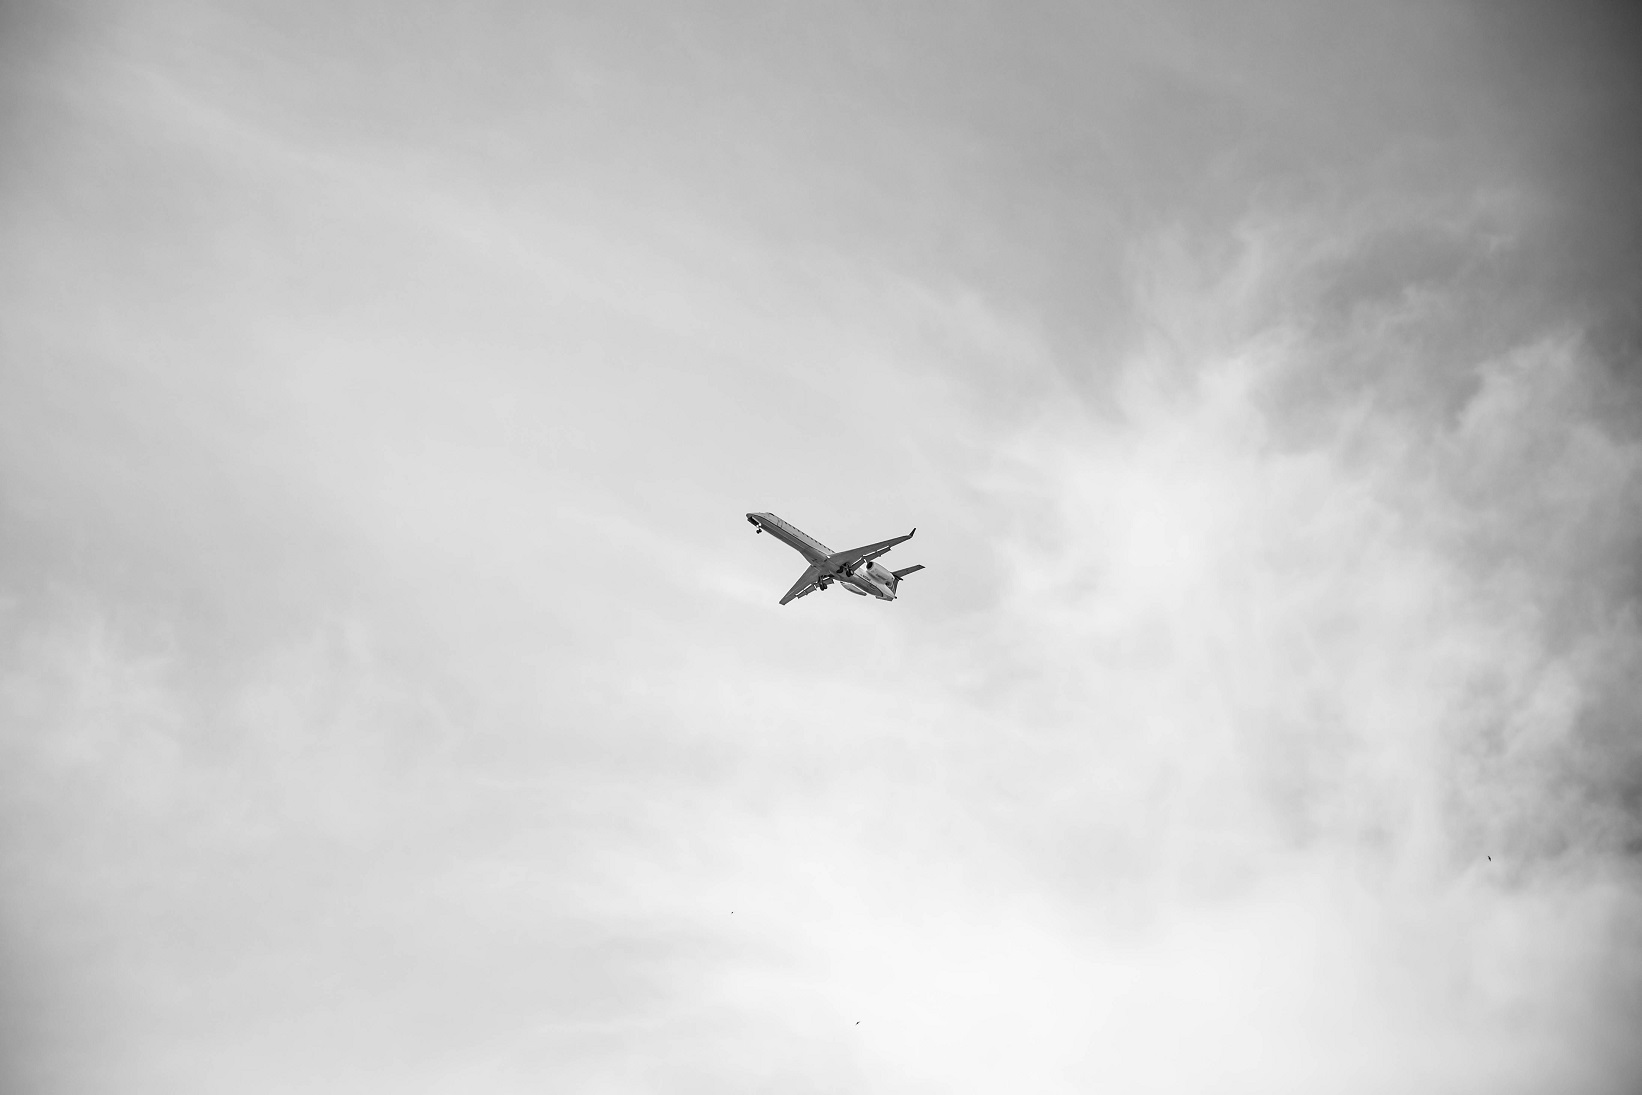 plane in the cloudy sky, cloudy days